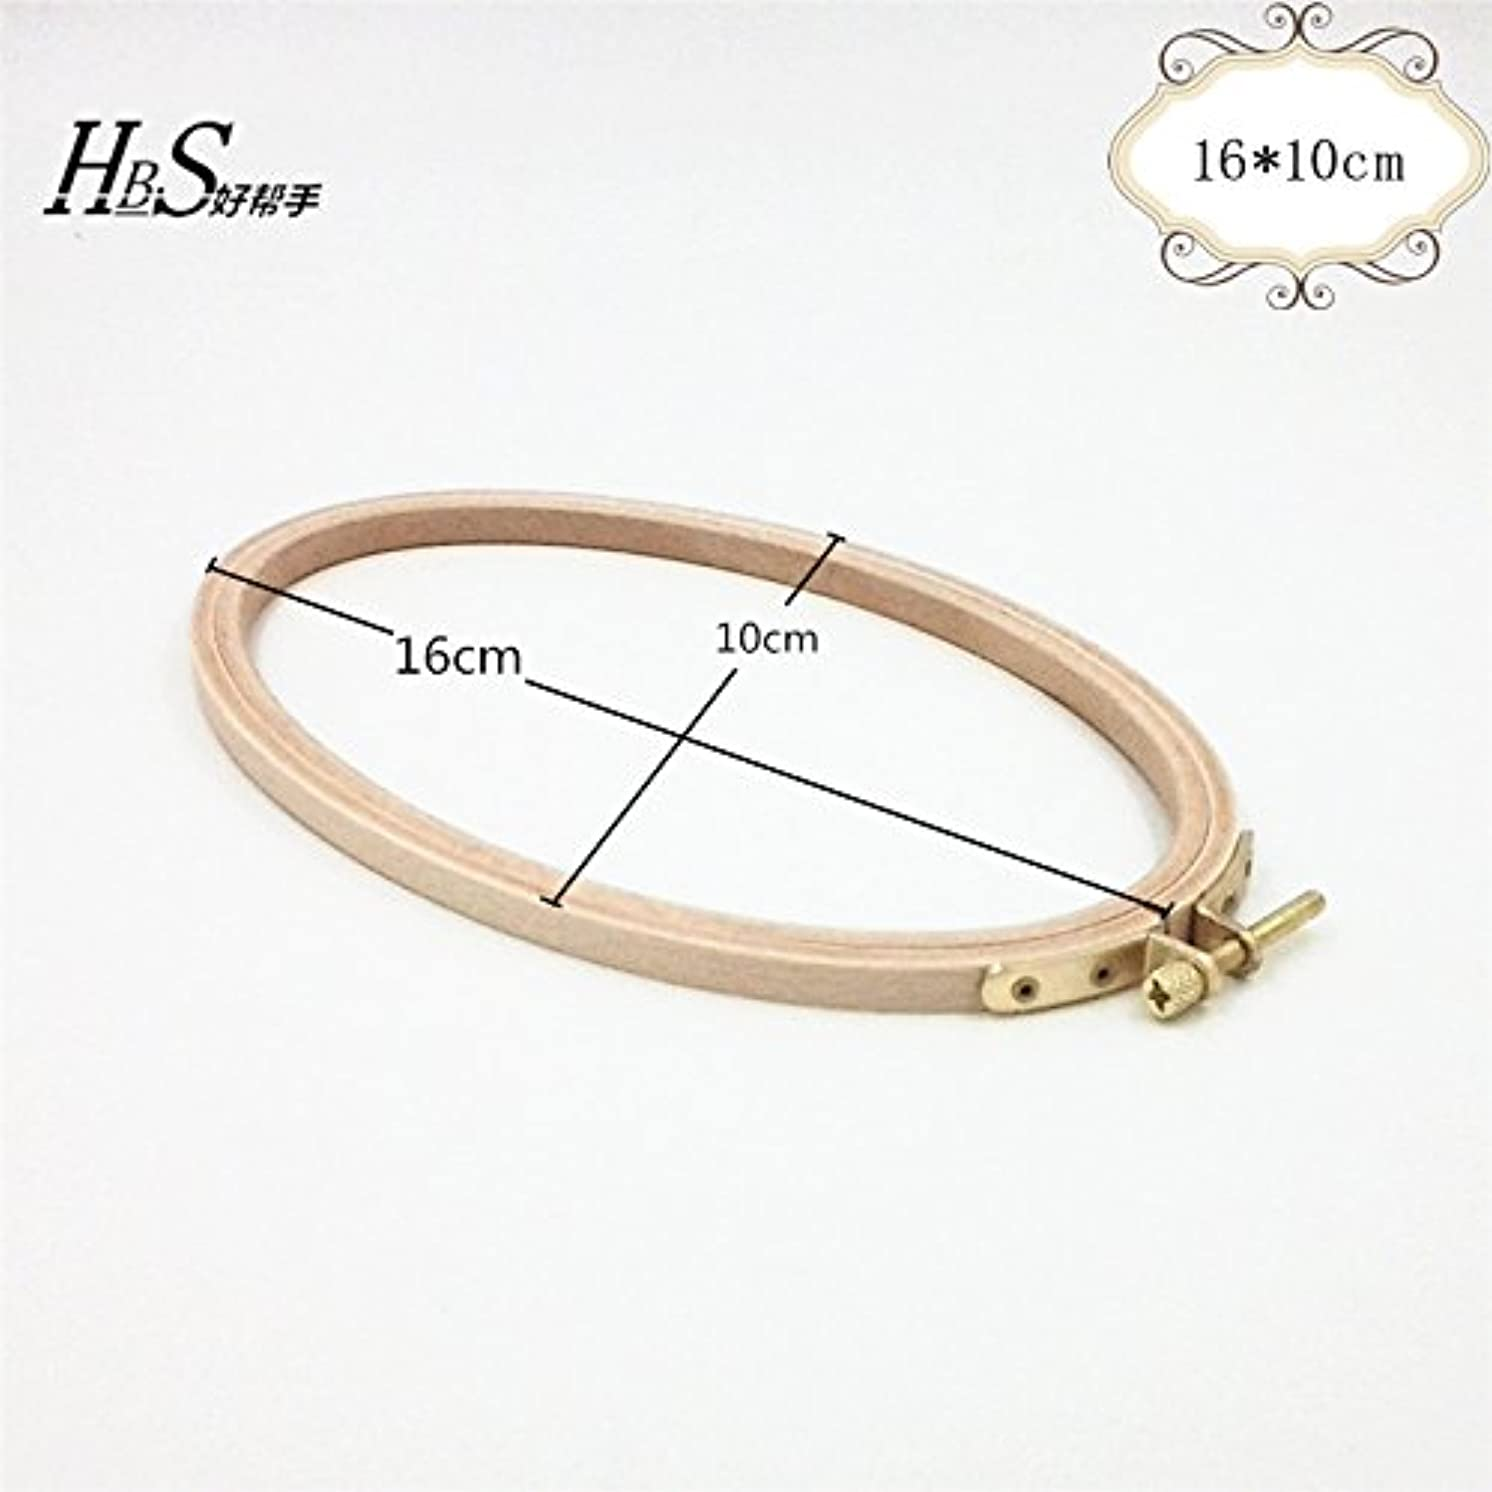 BWRMHME 6.33.95 Inch Cross Stitch Wooden Embroidery Hoop Ellipse Craft Tool- 1610cm